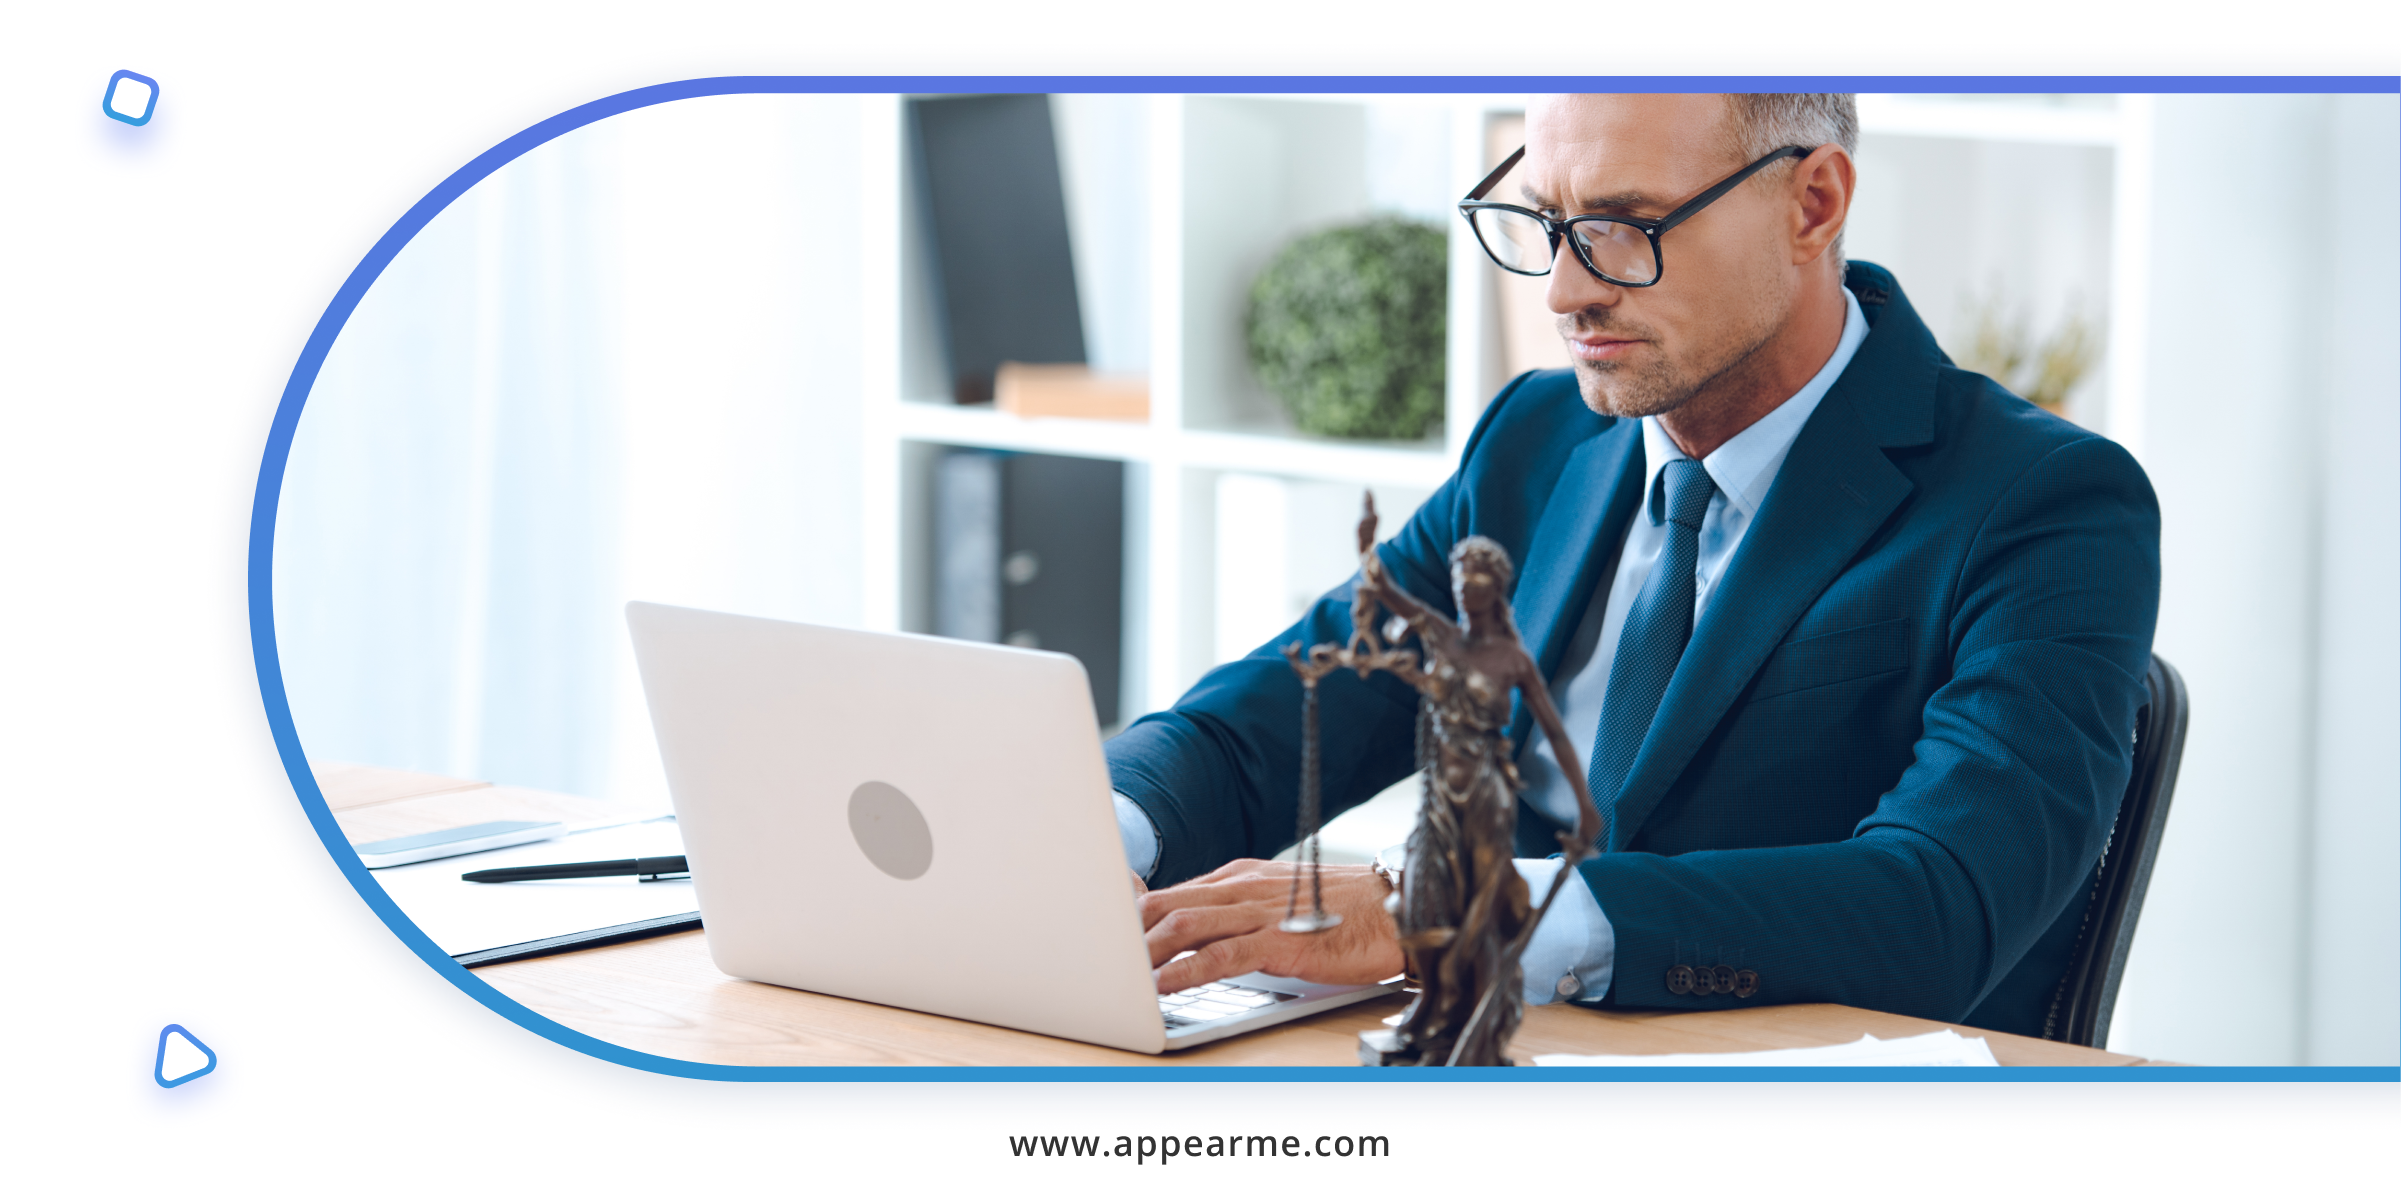 A Nationwide Network of Deposition Attorneys Is a Click Away